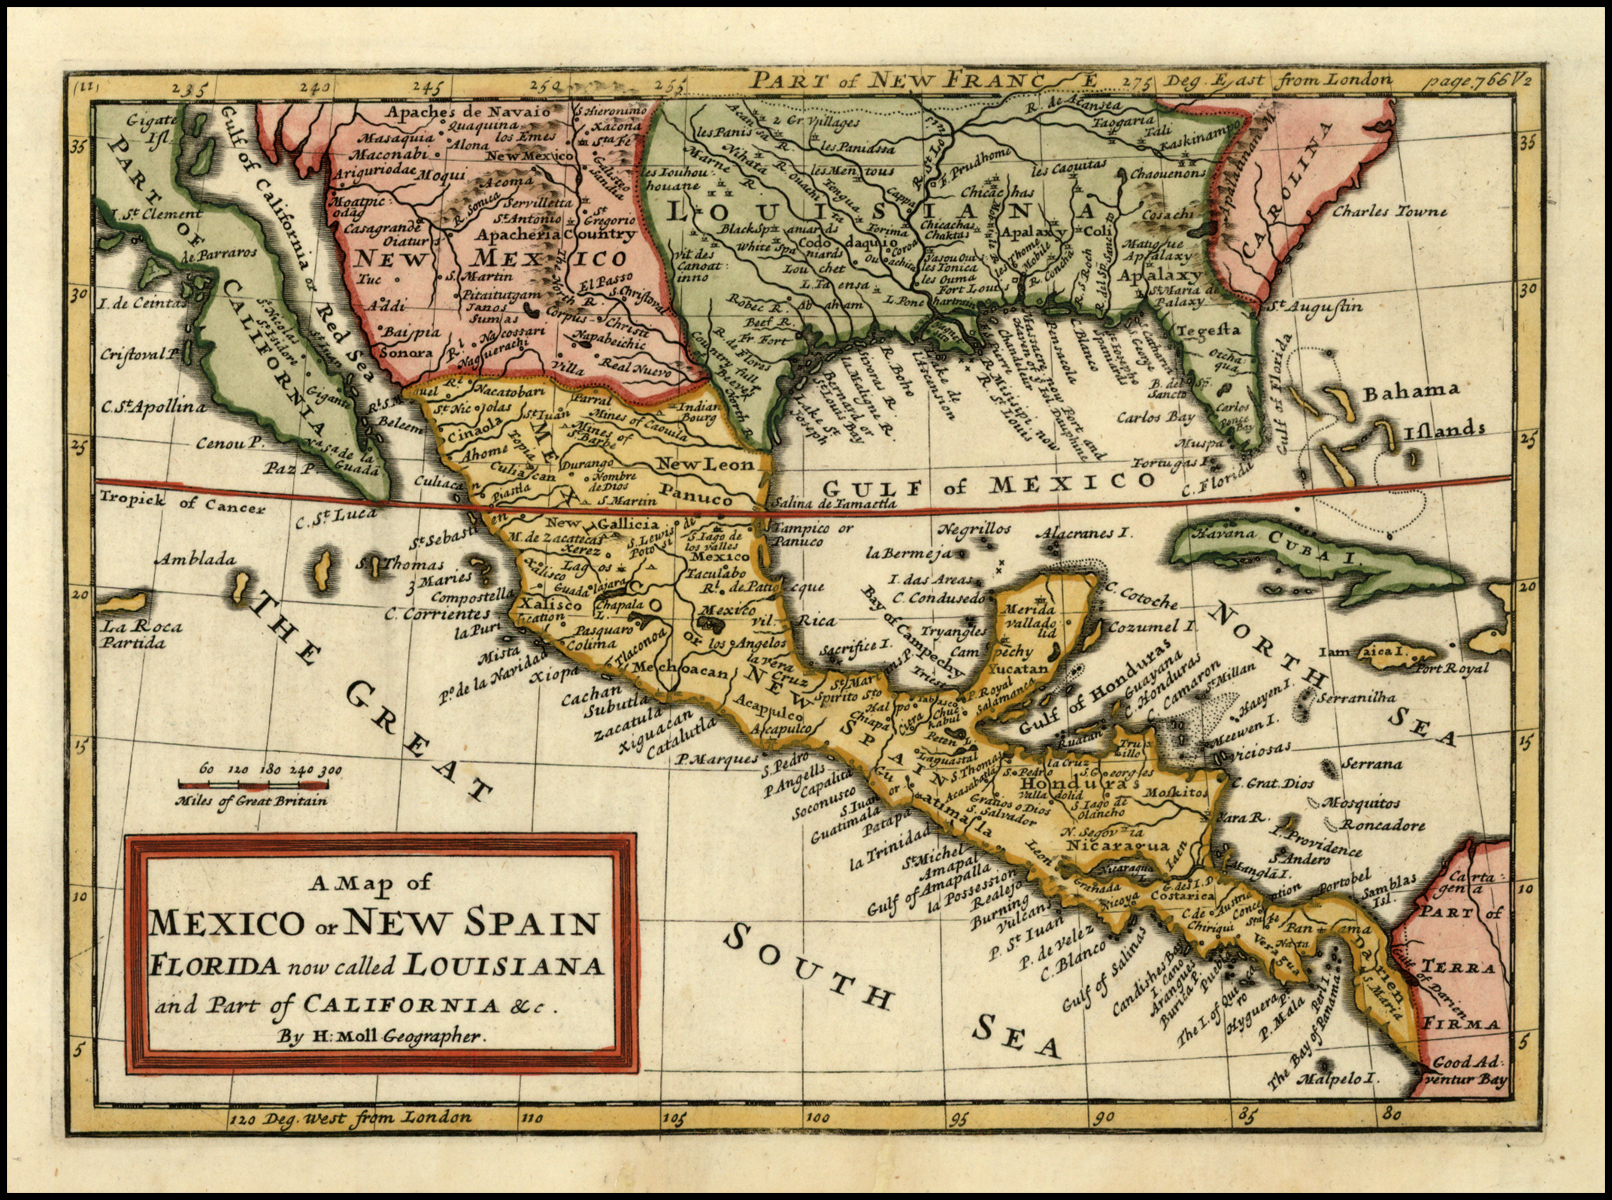 filea map of mexico or new spain florida now called louisiana and part